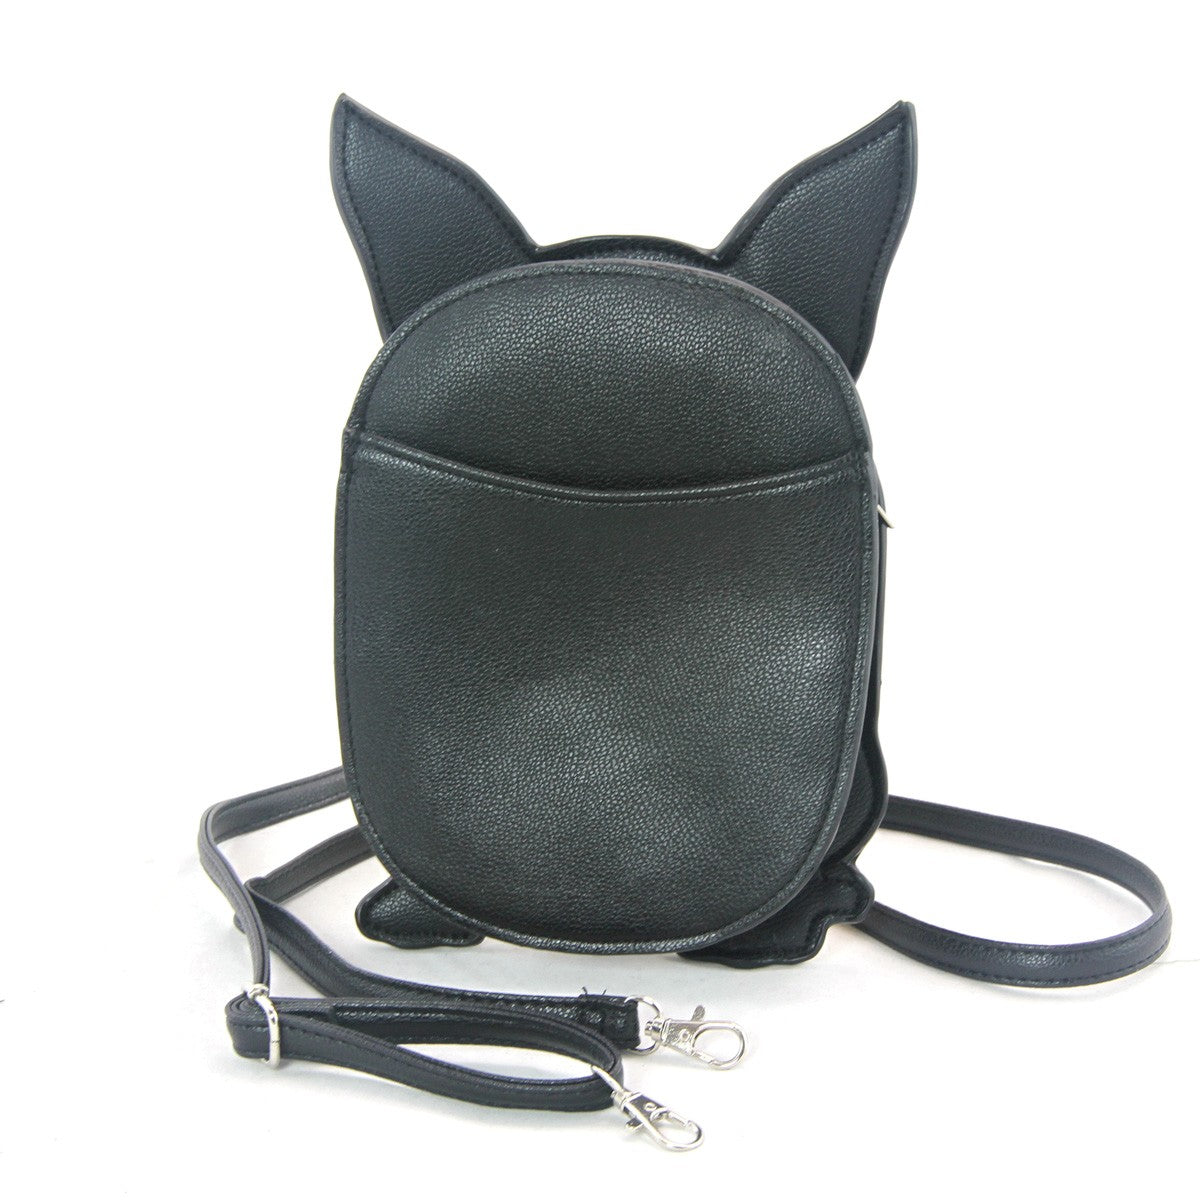 French Bulldog Crossbody Bag in Vinyl Material